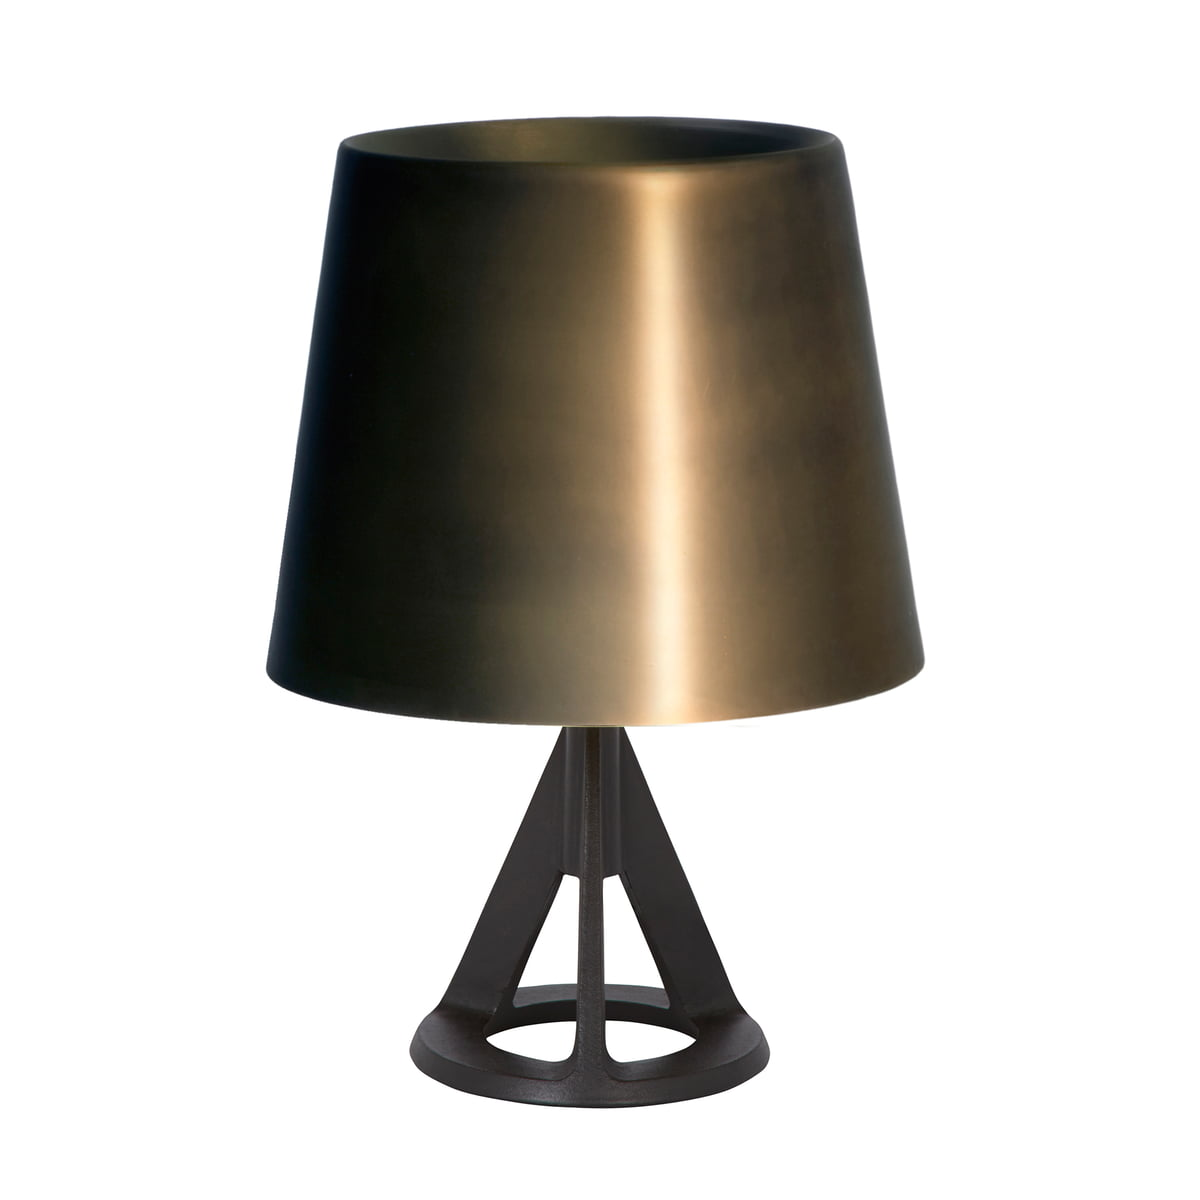 base table lamp by tom dixon in the shop. Black Bedroom Furniture Sets. Home Design Ideas